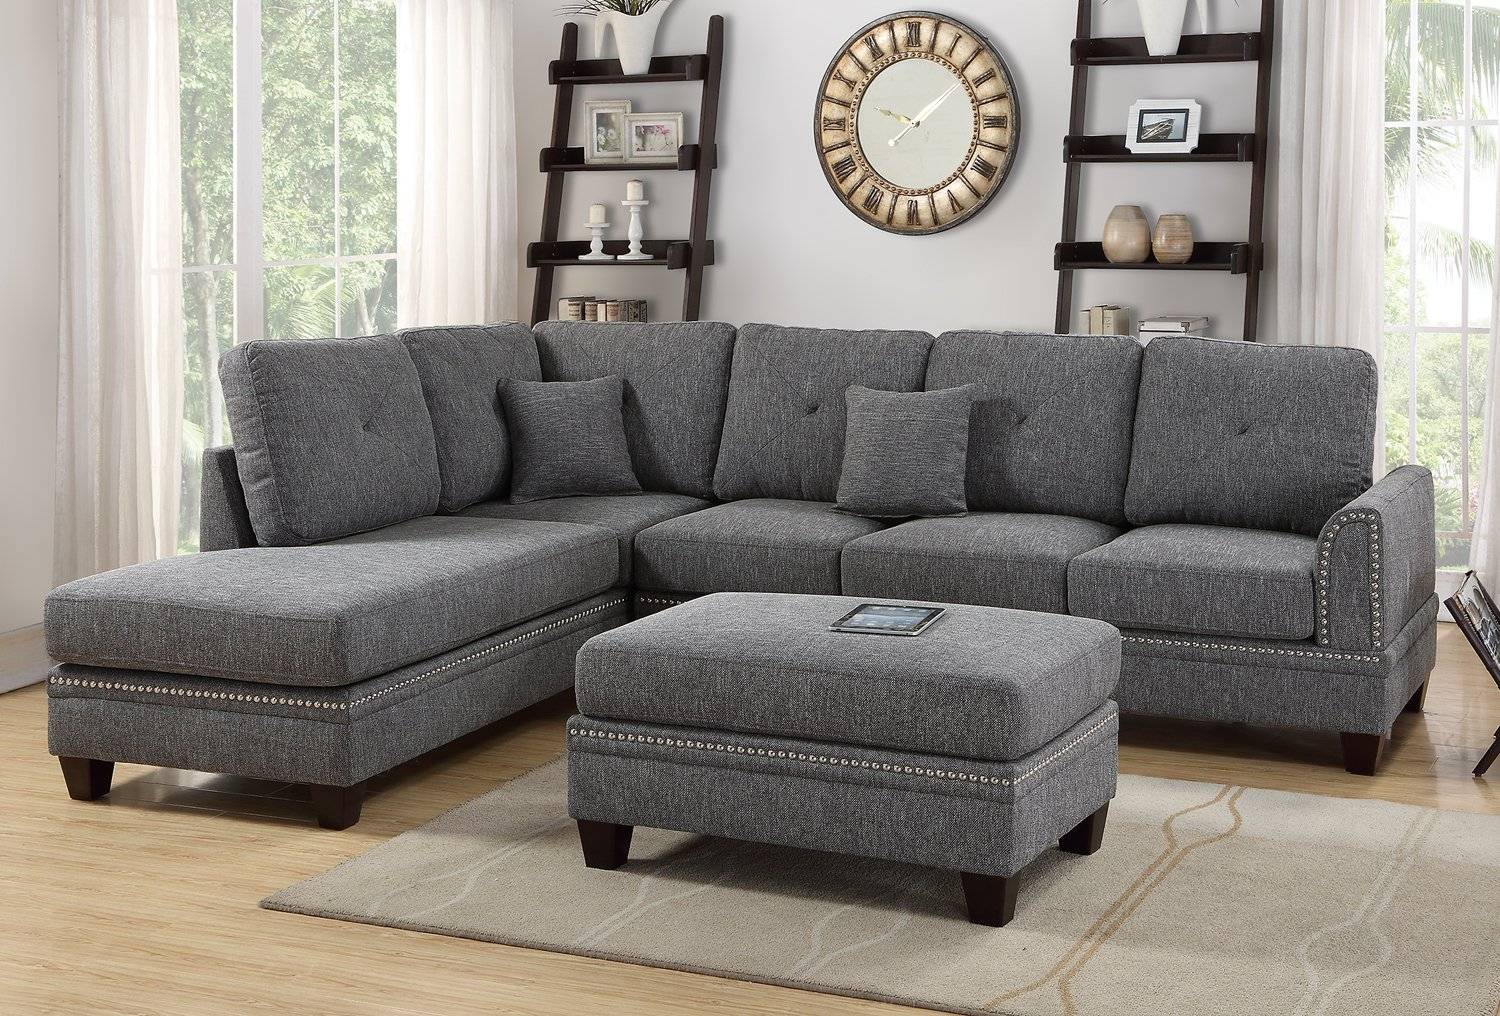 Poundex F6511 Bobkona Bandele Sectional Set